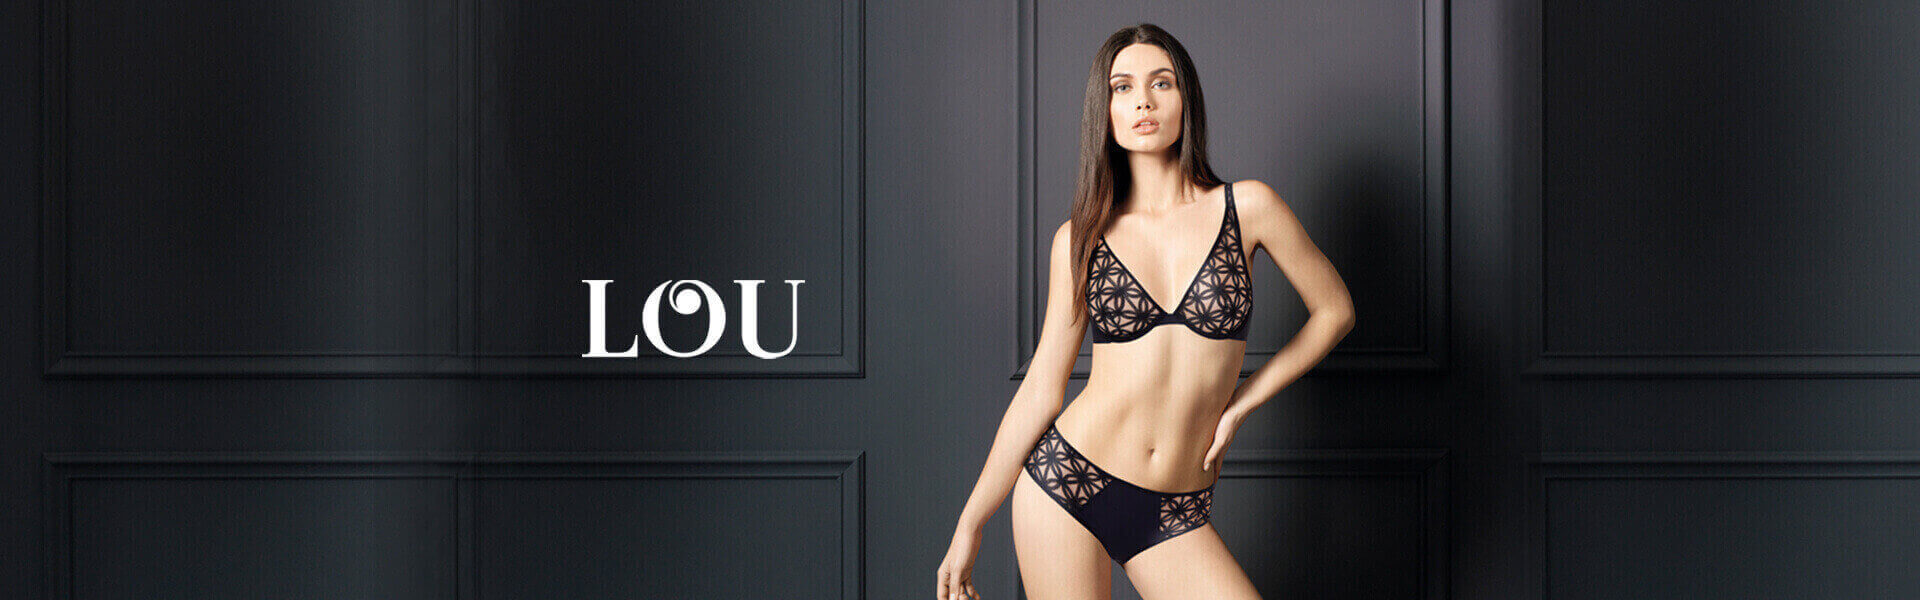 plus récent 16b48 7f469 Lou – Concept Brands